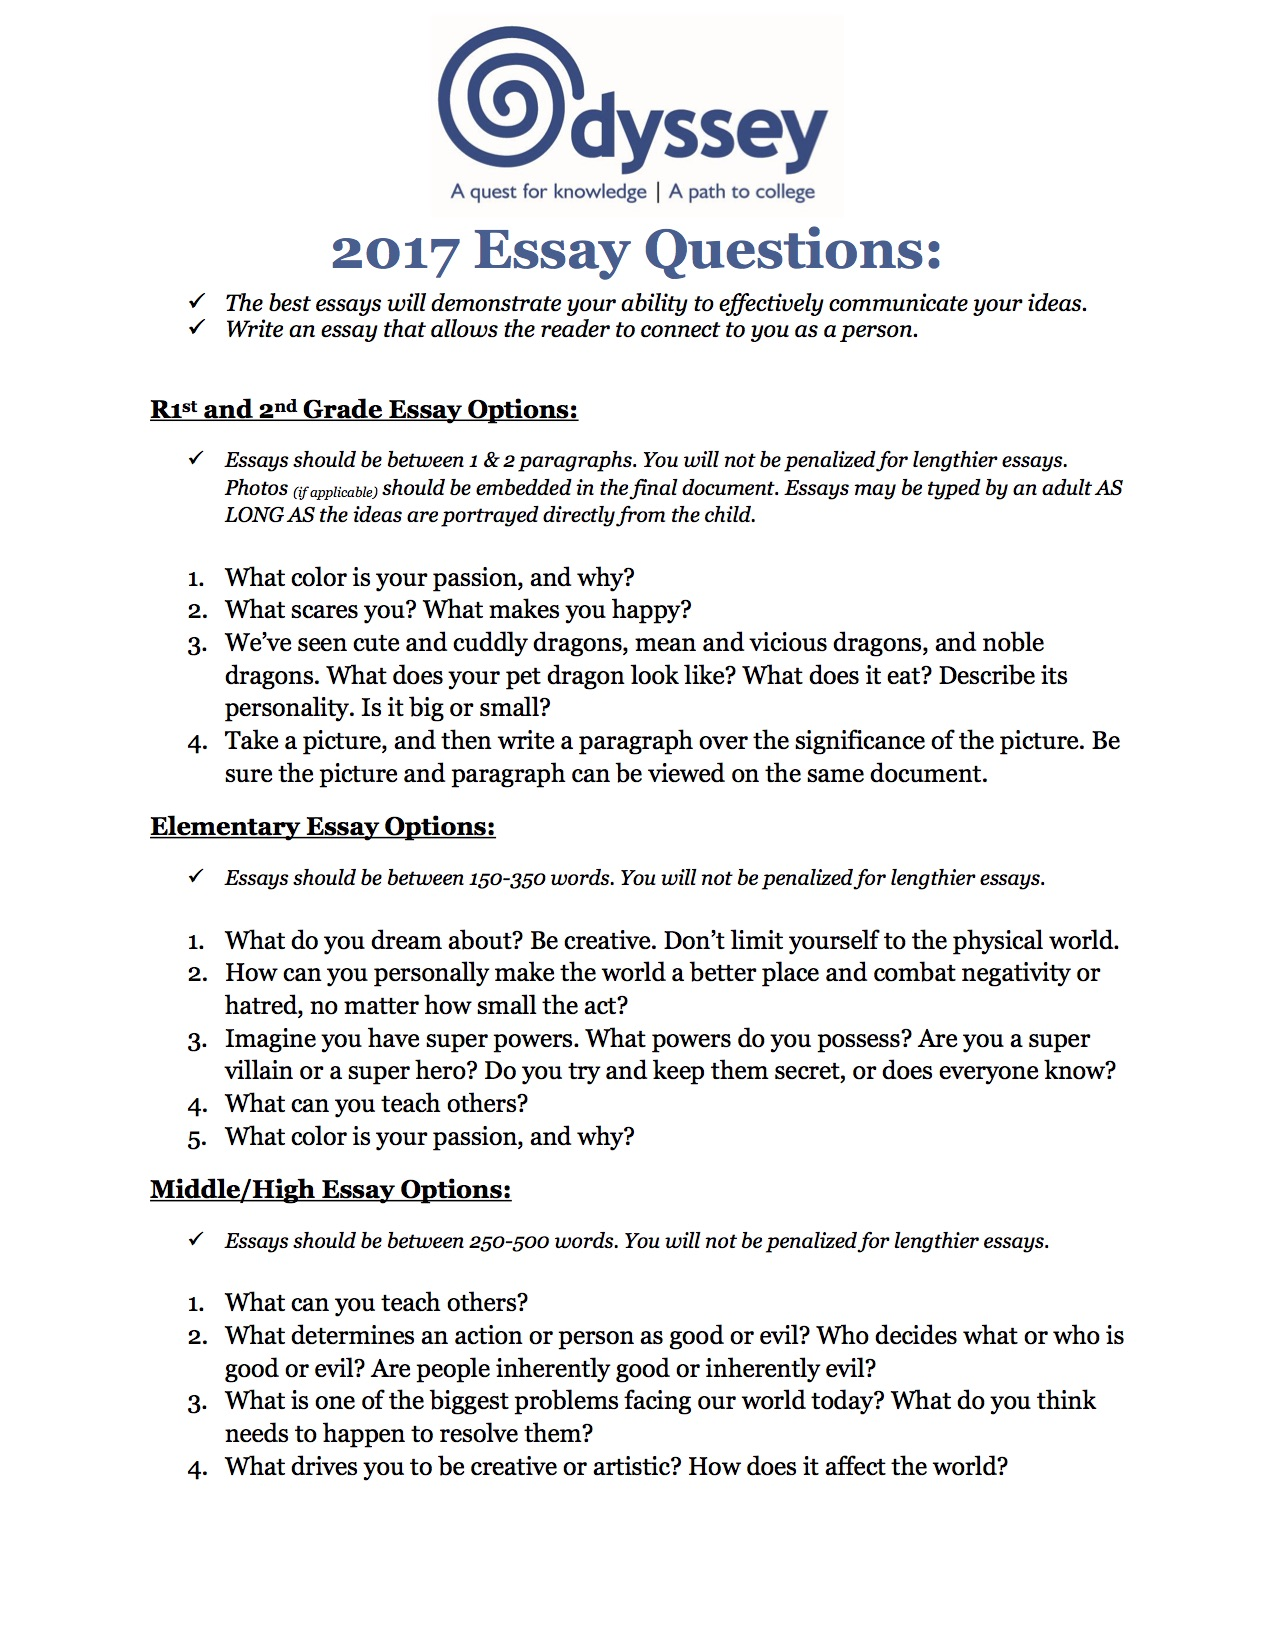 002 Odyssey Essay Topics 5829f1d2c75f9a7c5588b1c6 Proposed20essay20topics202017 Amazing Hero Prompt Full